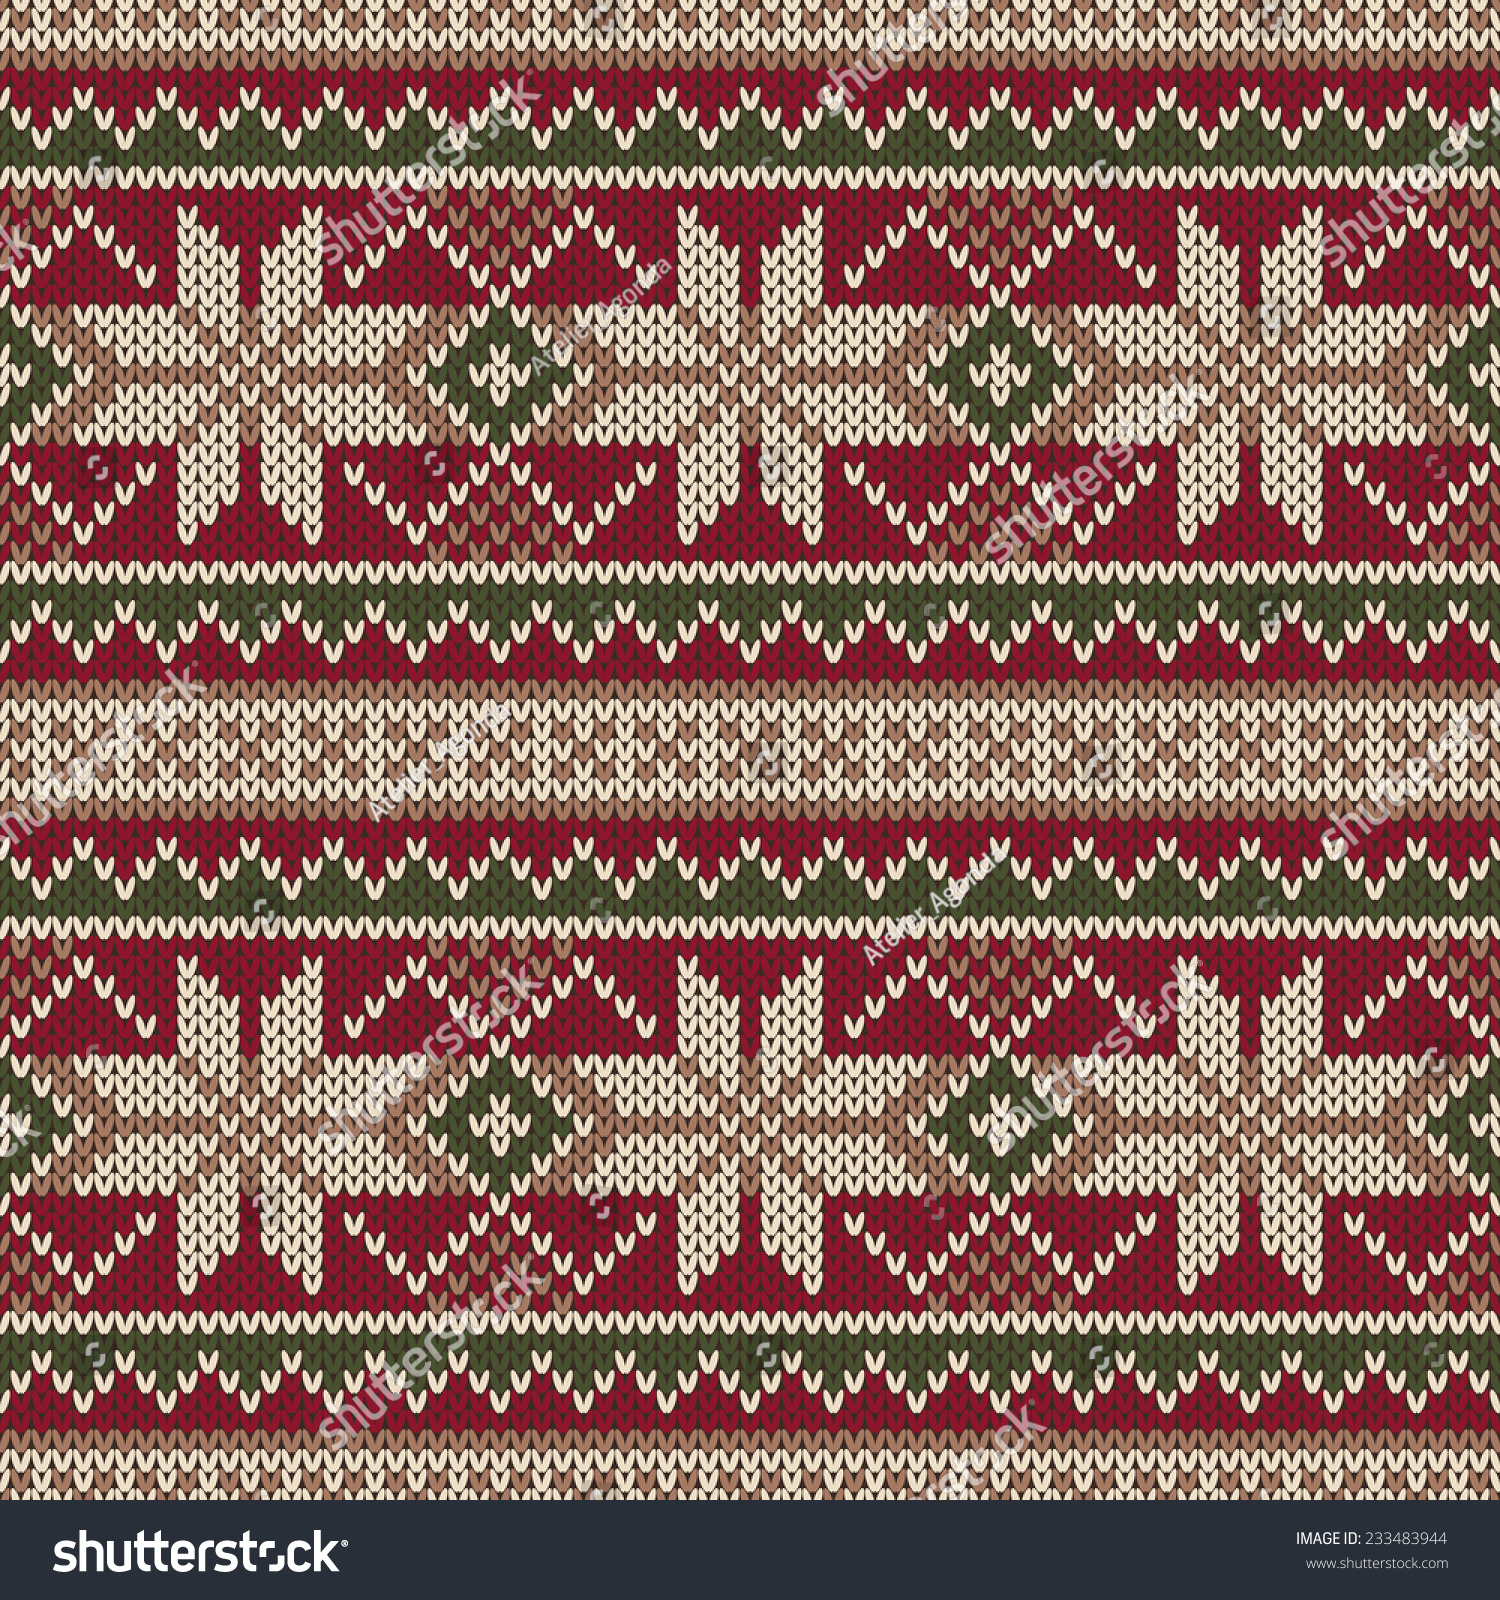 Christmas Knitting Background : Christmas sweater design seamless knitting pattern stock